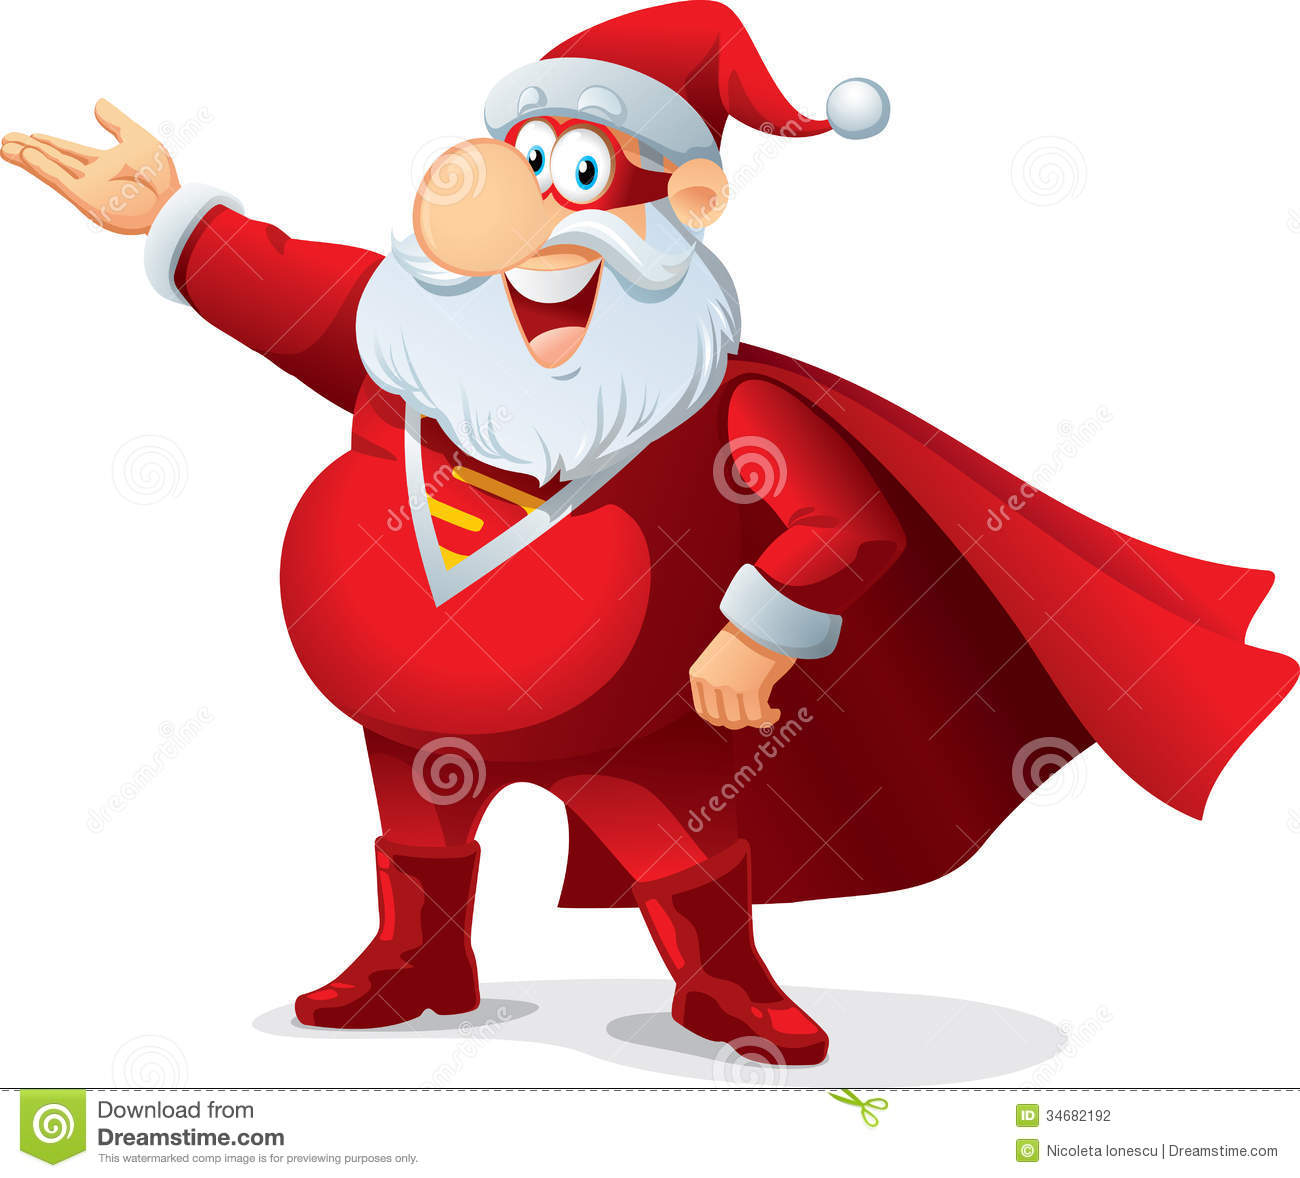 Santa Claus as a superhero, wearing a mask and cape. File type: vector ...